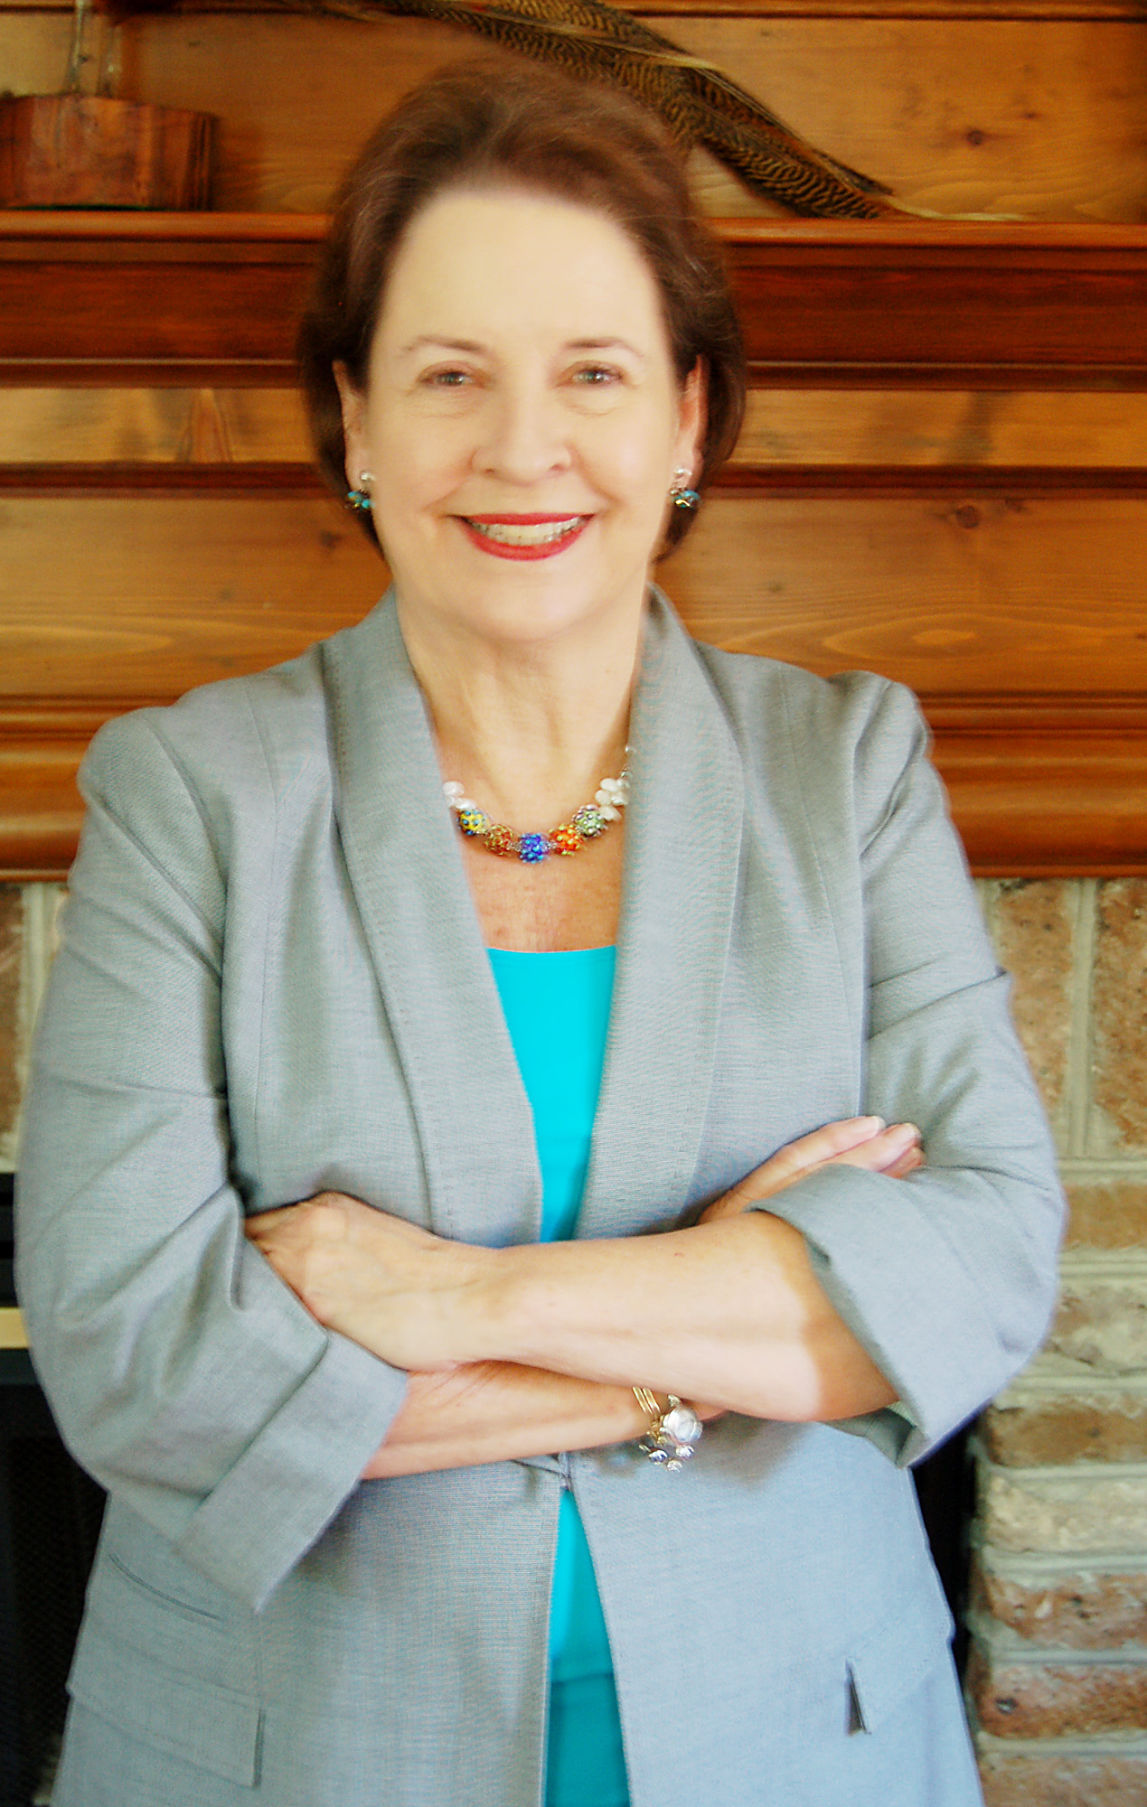 Veteran agent Frances Horton specializes in knowing the Charleston